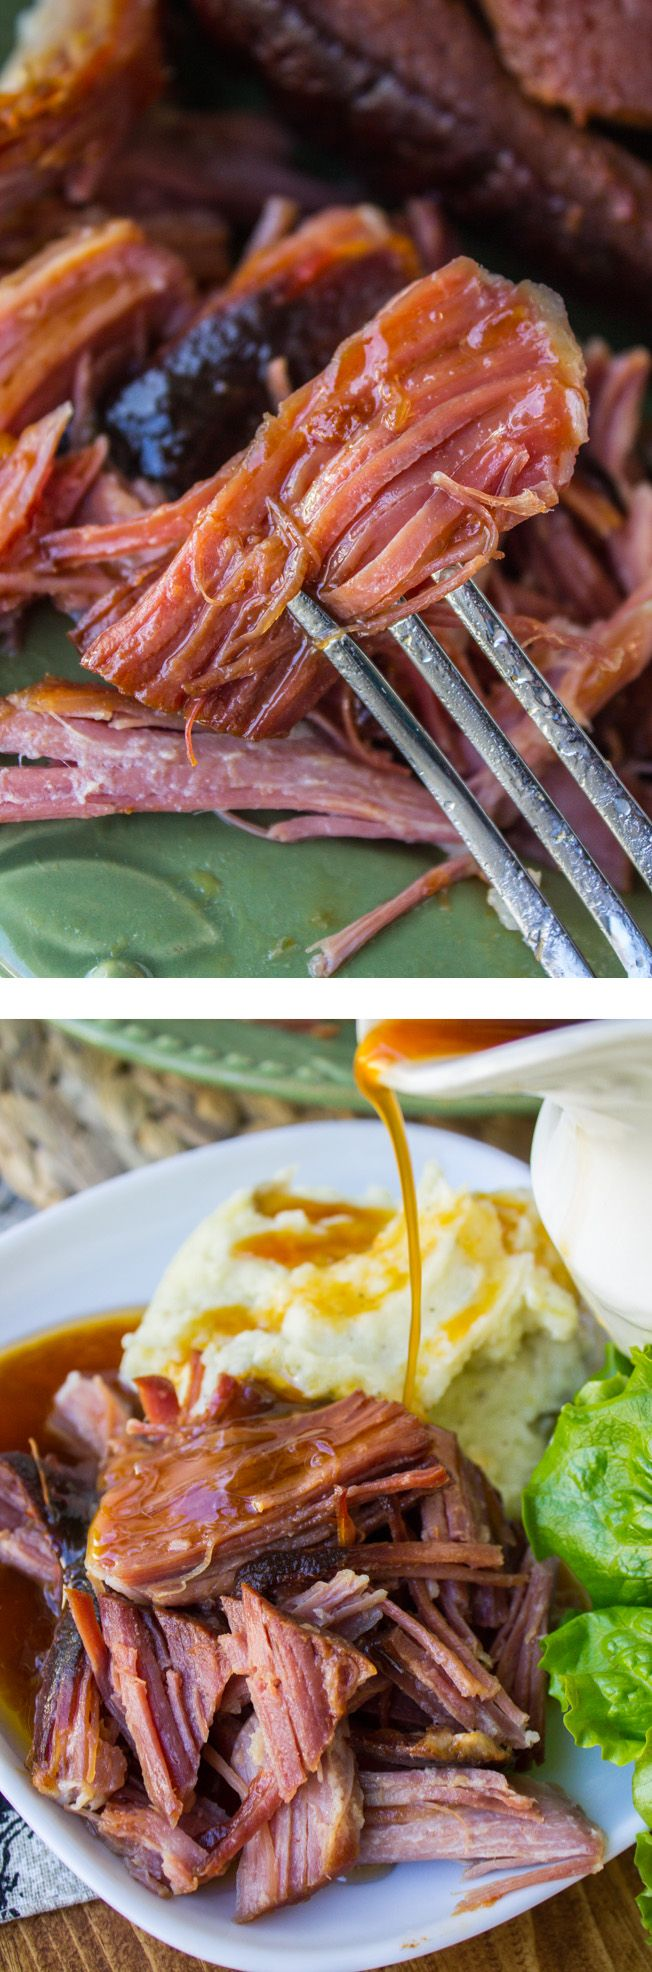 Easy Sriracha Ham (Slow Cooker) // The Food Charlatan. This 3 ingredient ham is so easy and melts in your mouth! Perfect for Easter, when you need your oven for side dishes.